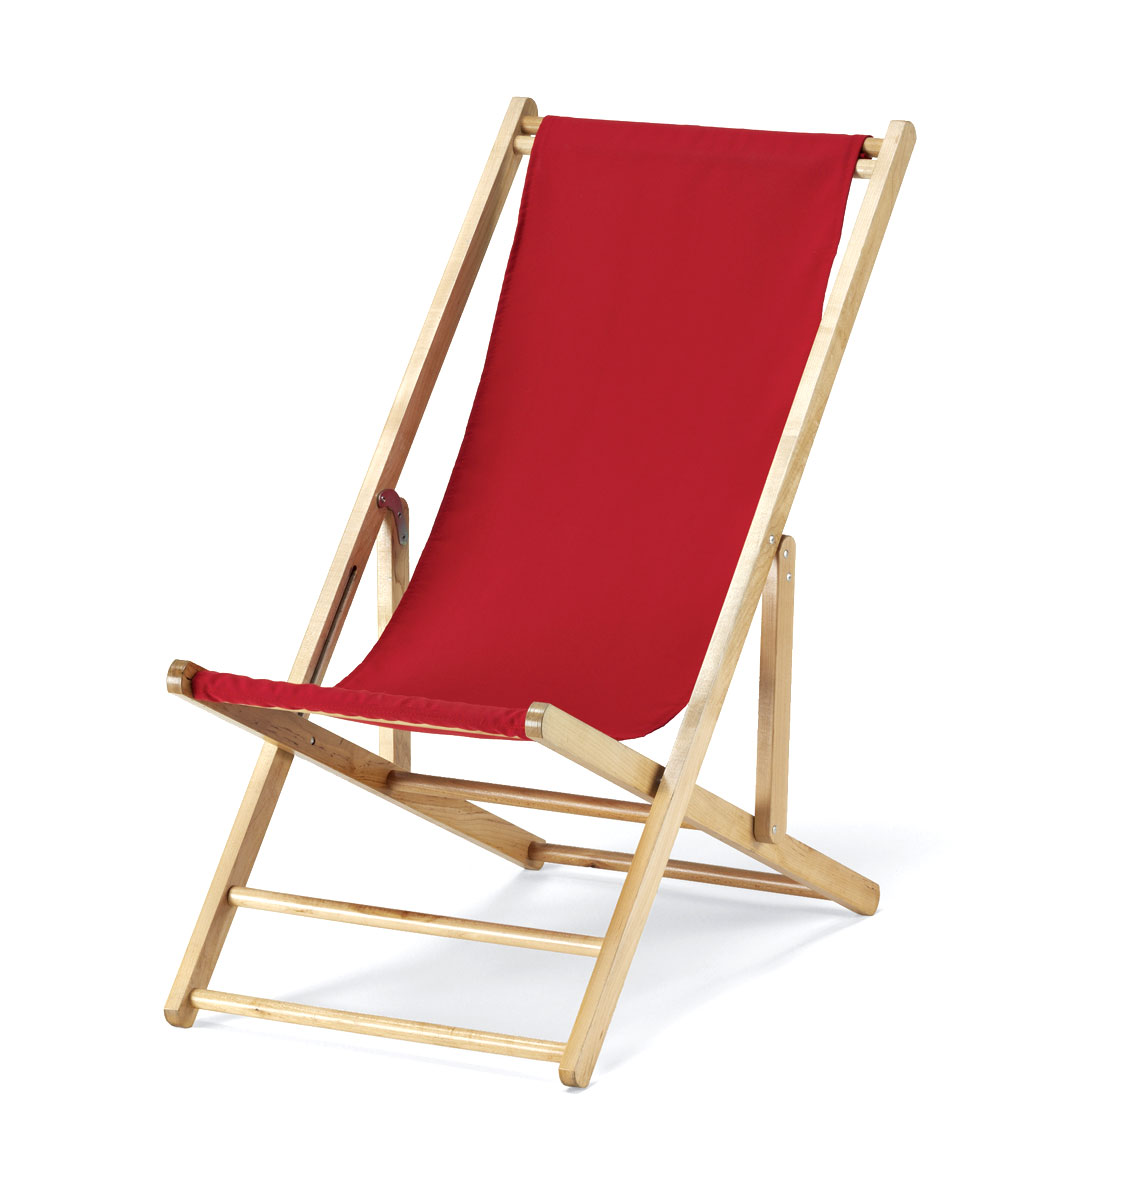 Admirable Custom Size Sling Or Beach Chair Sunbrella Replacement Sling Pdpeps Interior Chair Design Pdpepsorg